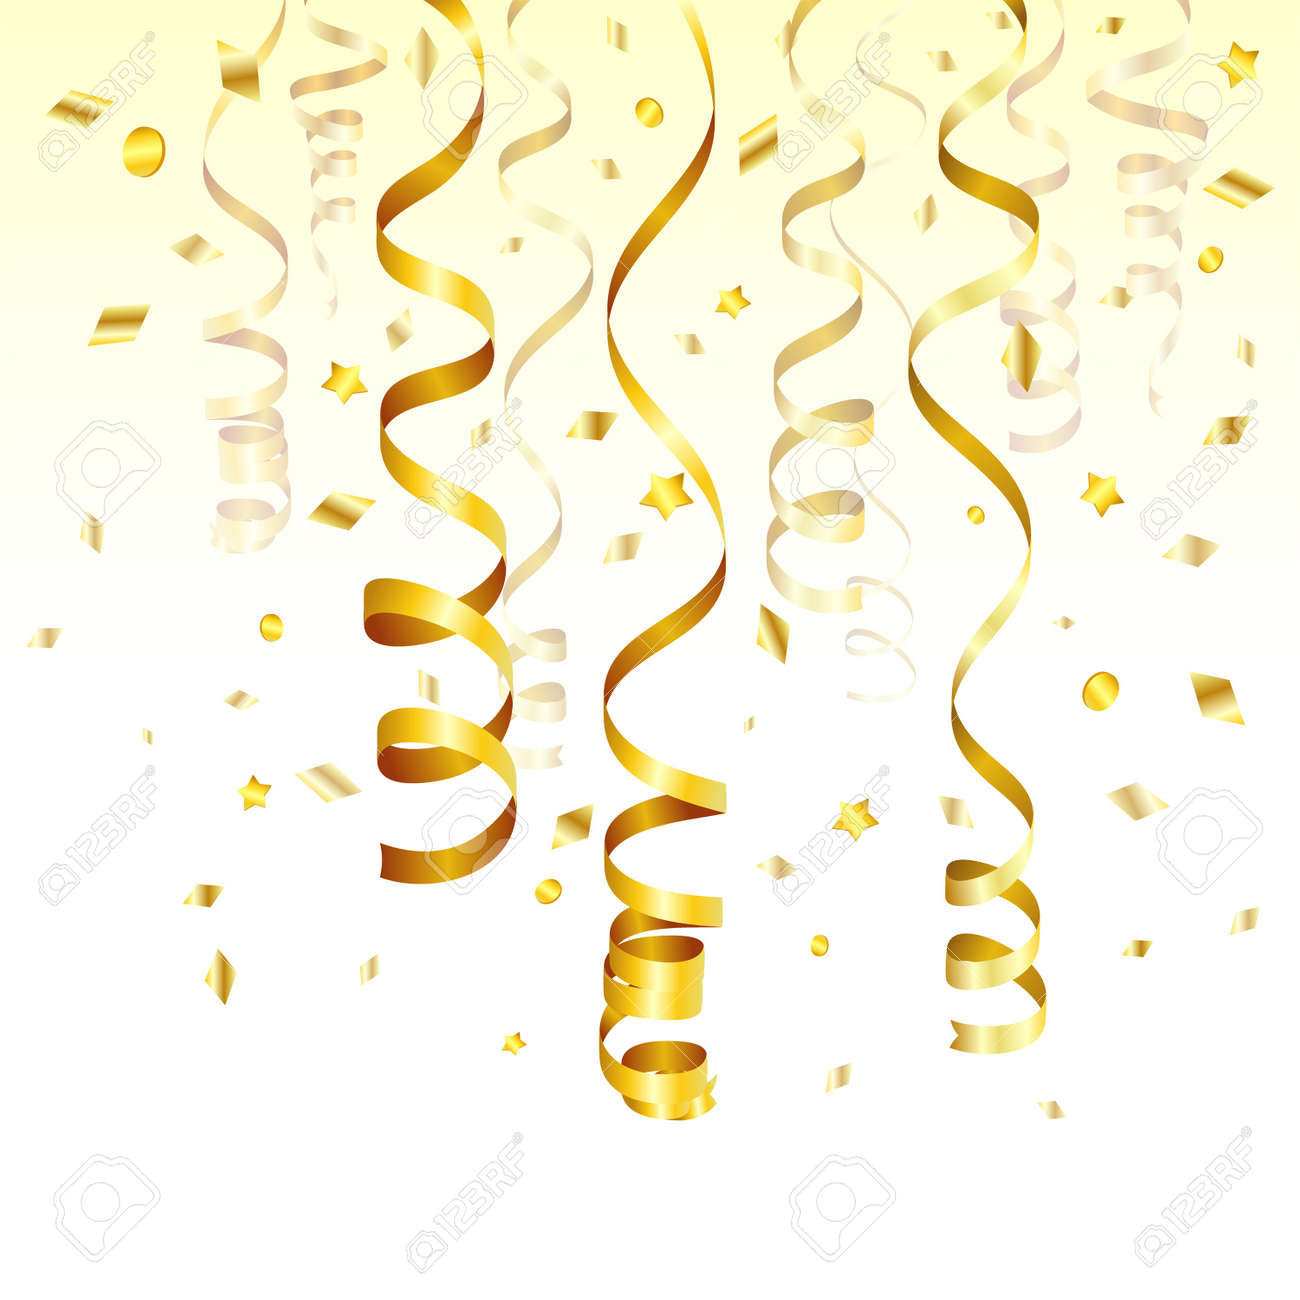 Birthday Background with Gold Streamer and Confetti, vector illustration Stock Vector - 15537645